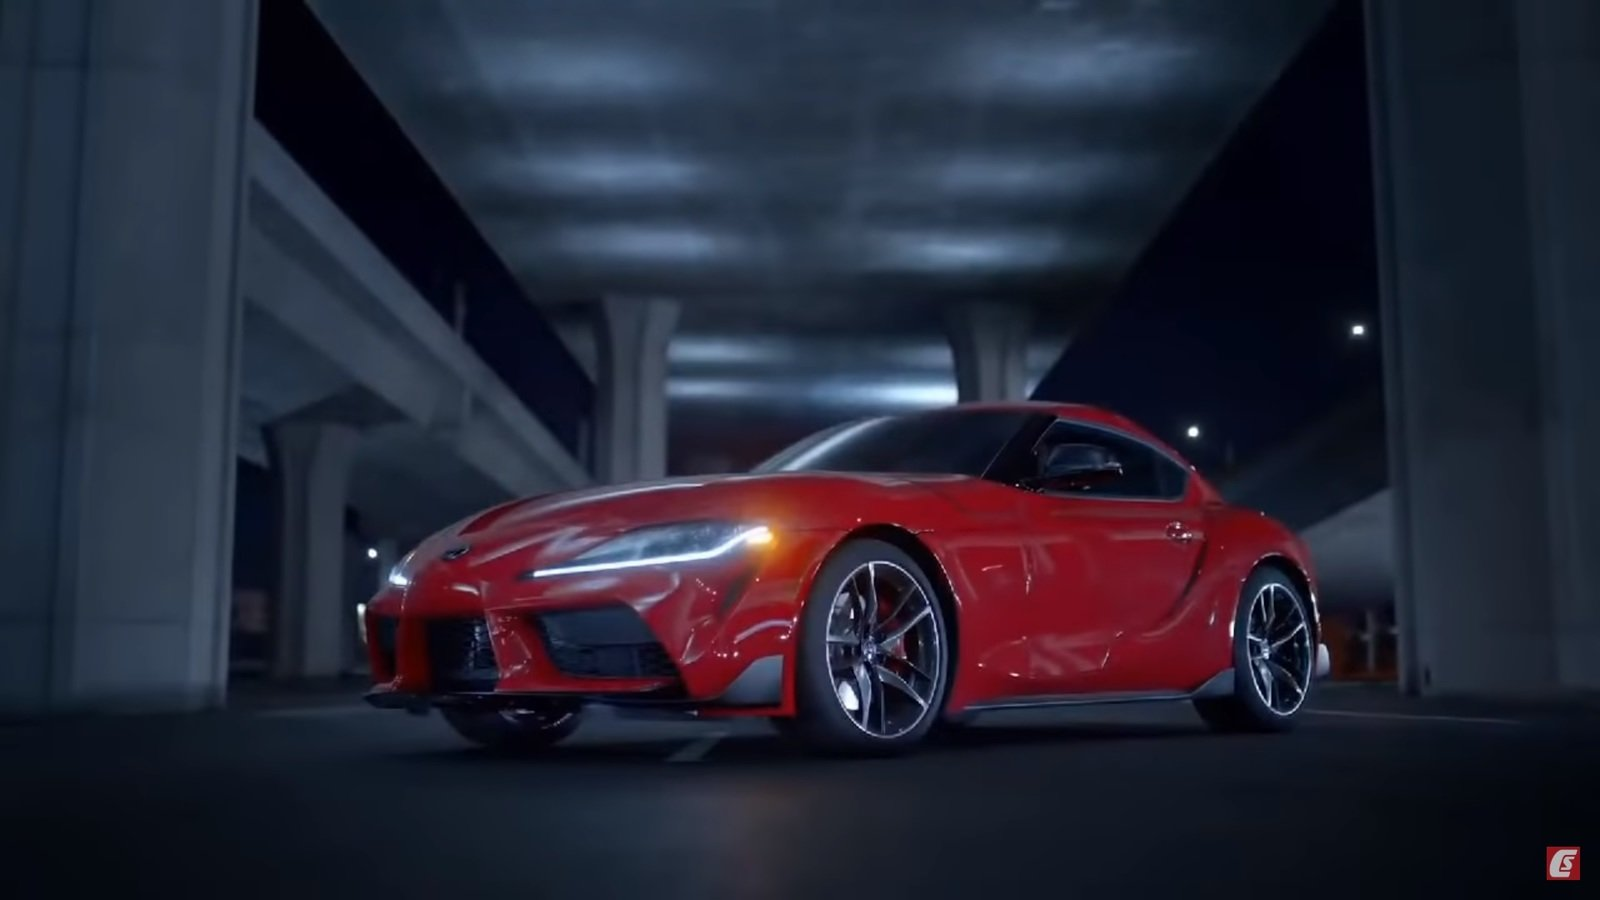 Here S The Toyota Supra Before You Re Supposed To See It Hurry Up